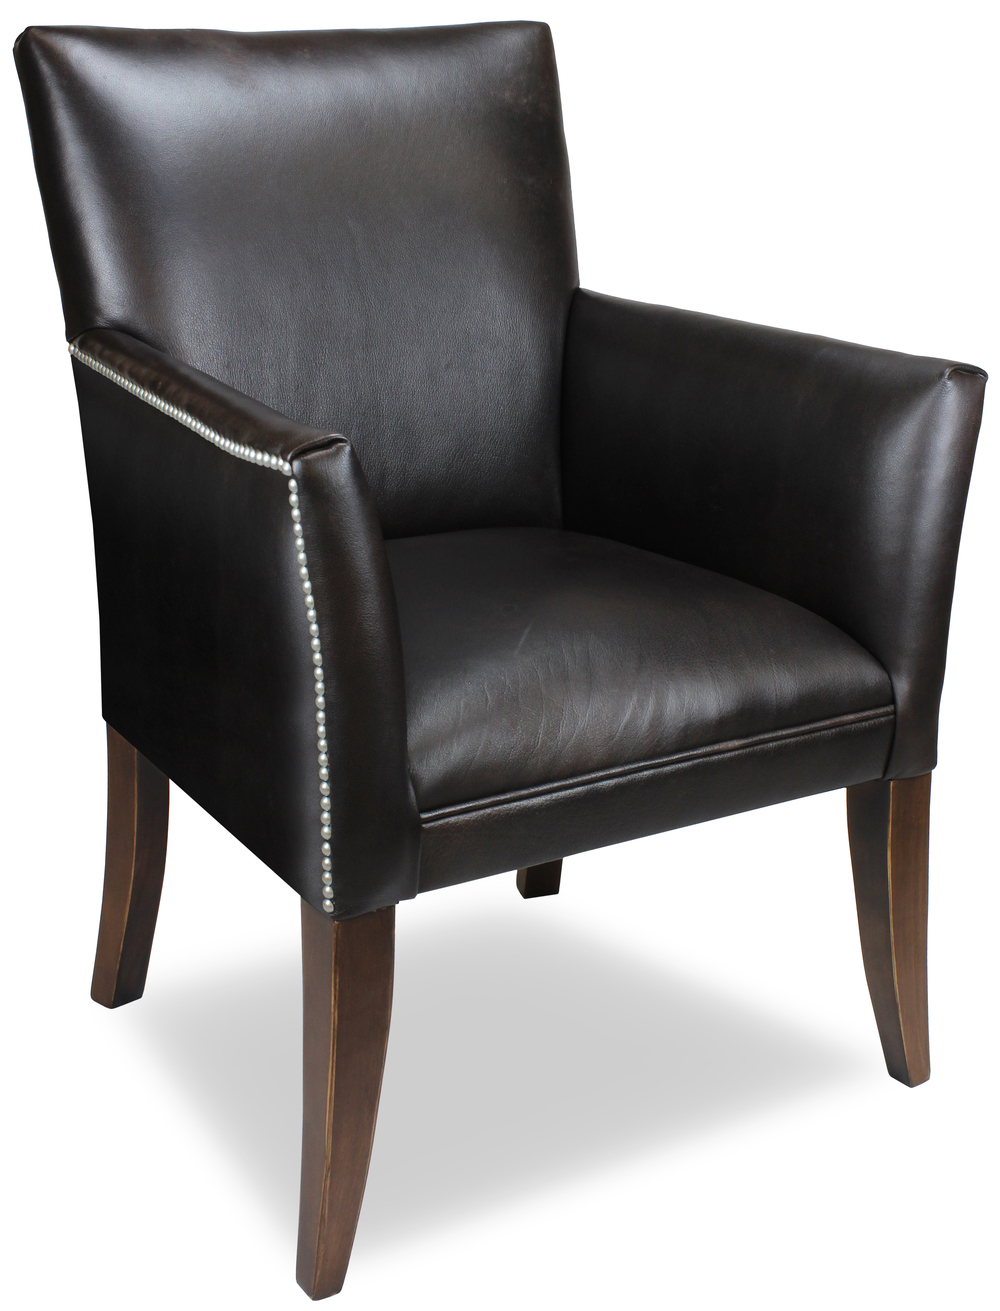 Parker Southern - Concord Chair